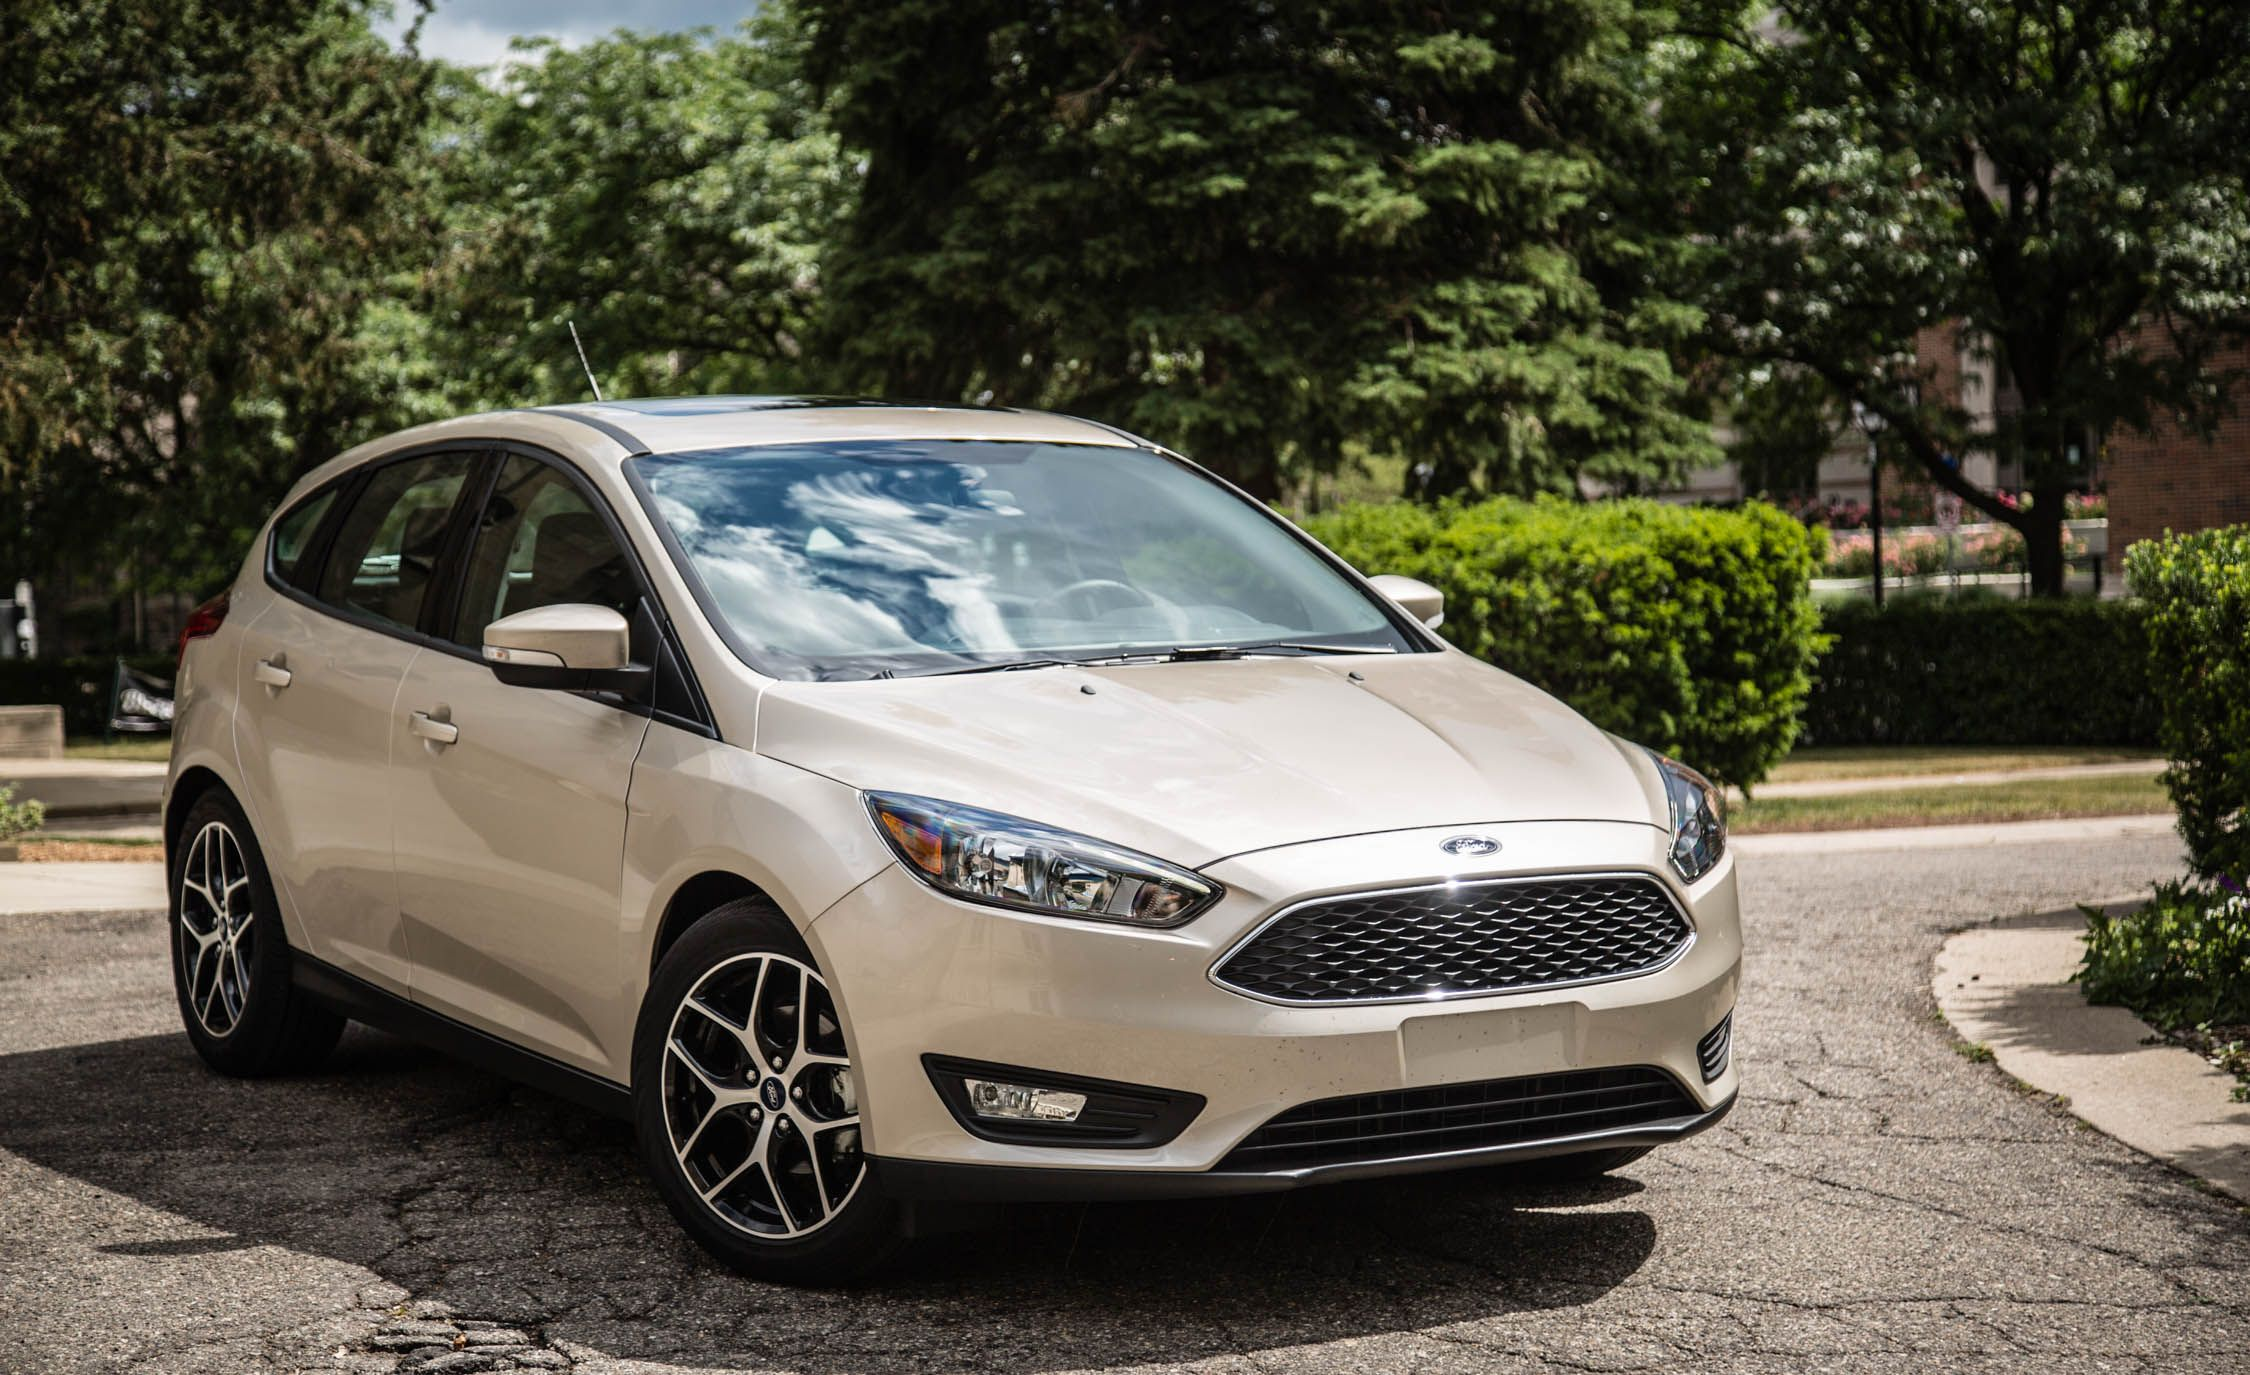 2017 ford focus sync 3 infotainment review car and driver. Black Bedroom Furniture Sets. Home Design Ideas